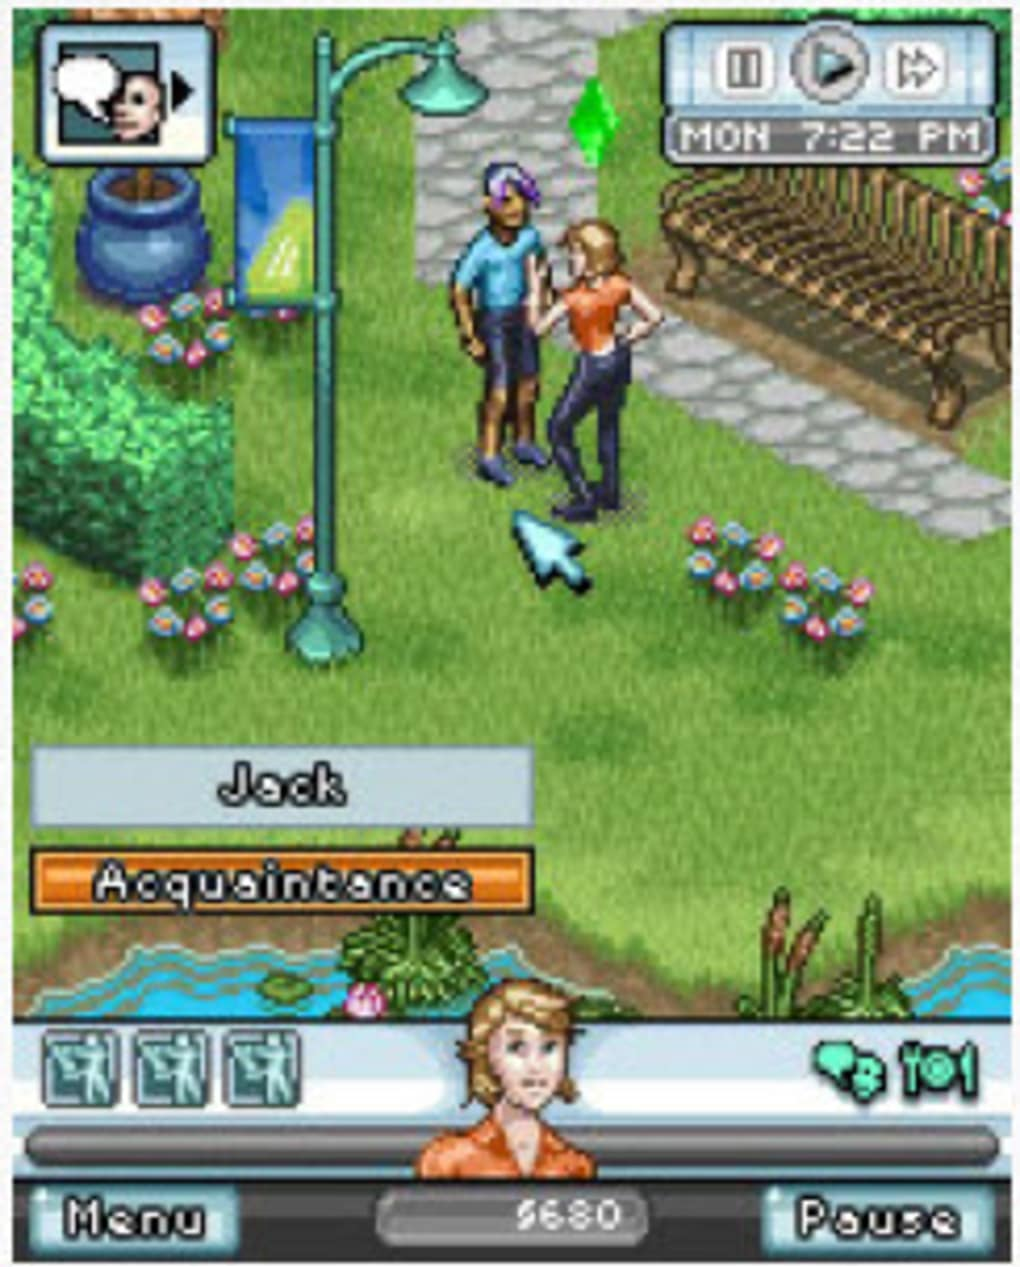 The sims 3 free download full version for pc ~ big pond games.